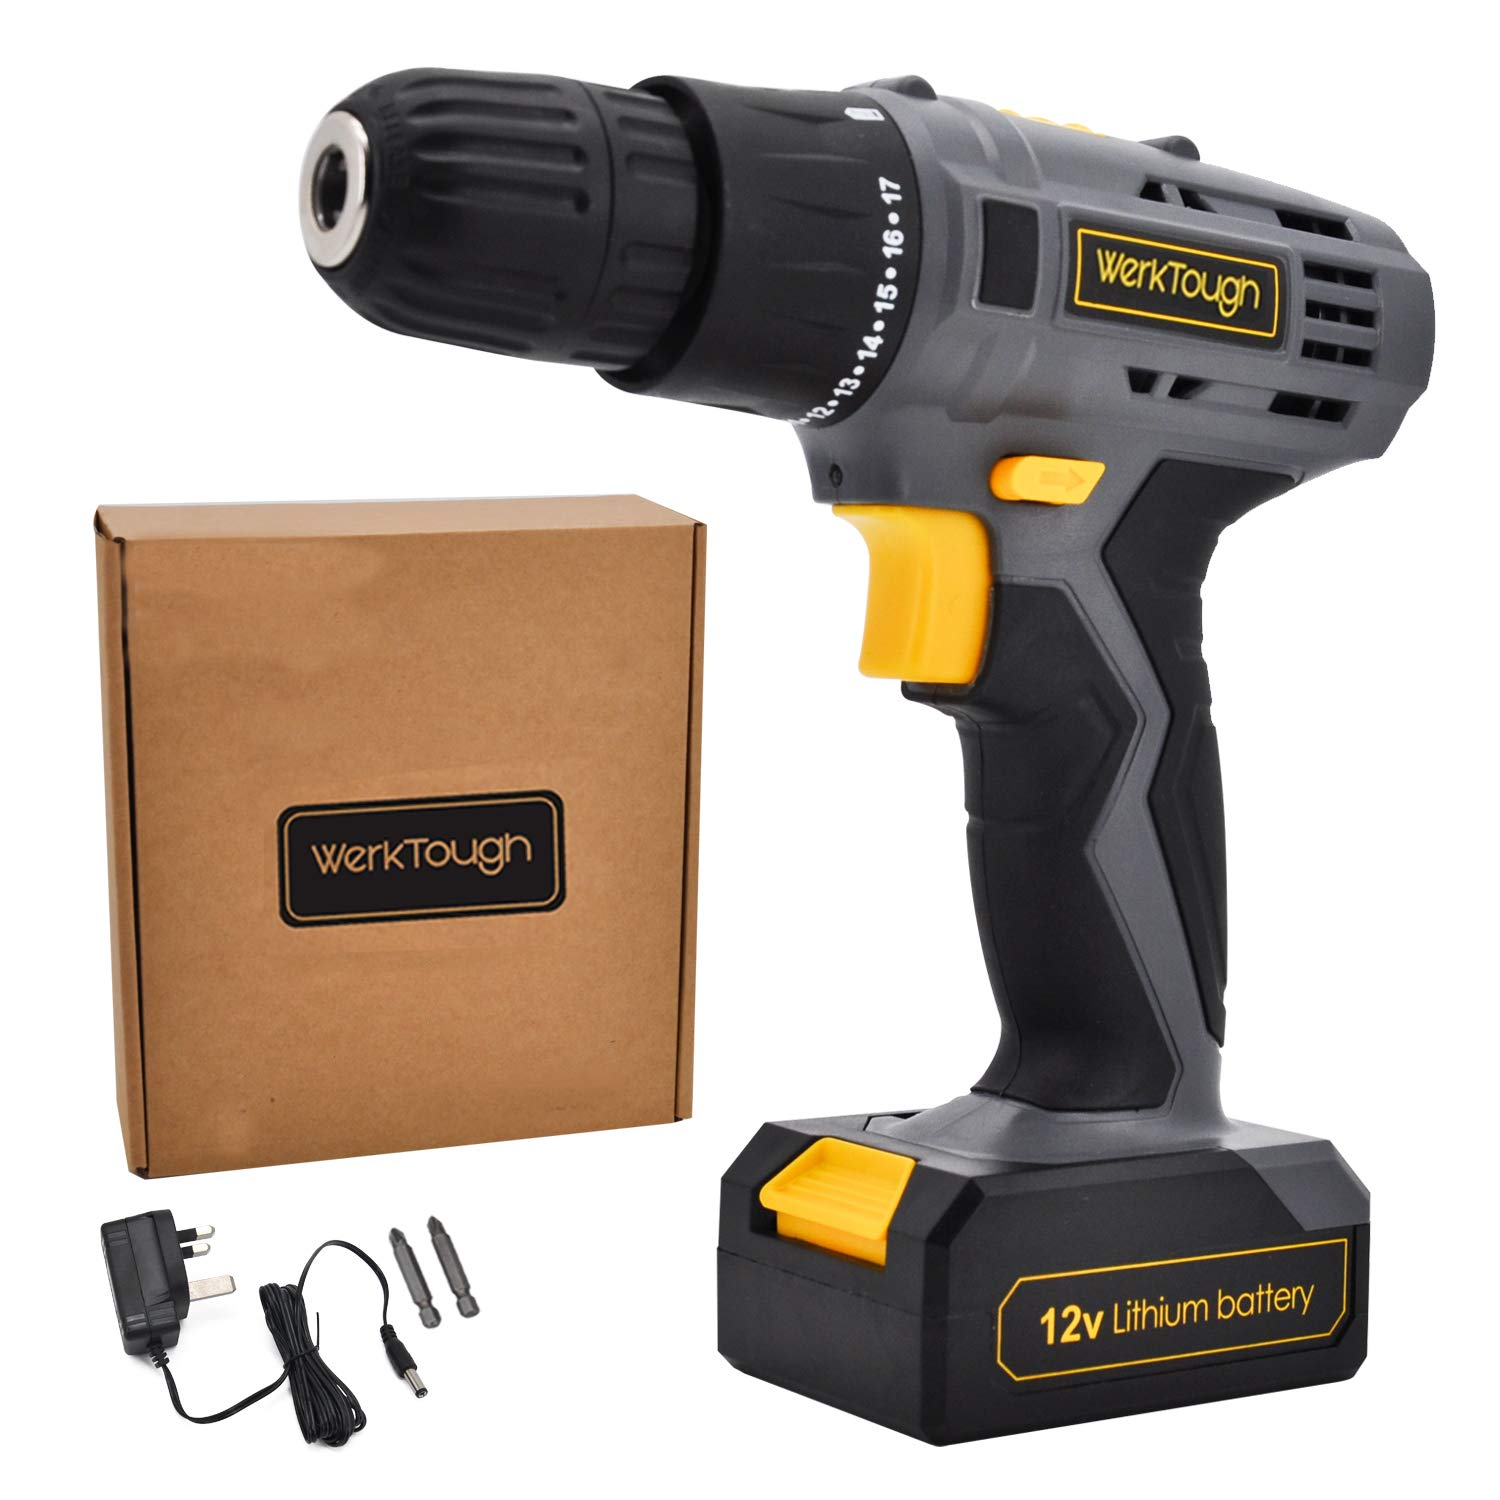 Werktough D018 12V Cordless Drill Driver Powerful Screwdriver Lion Battery with Charger